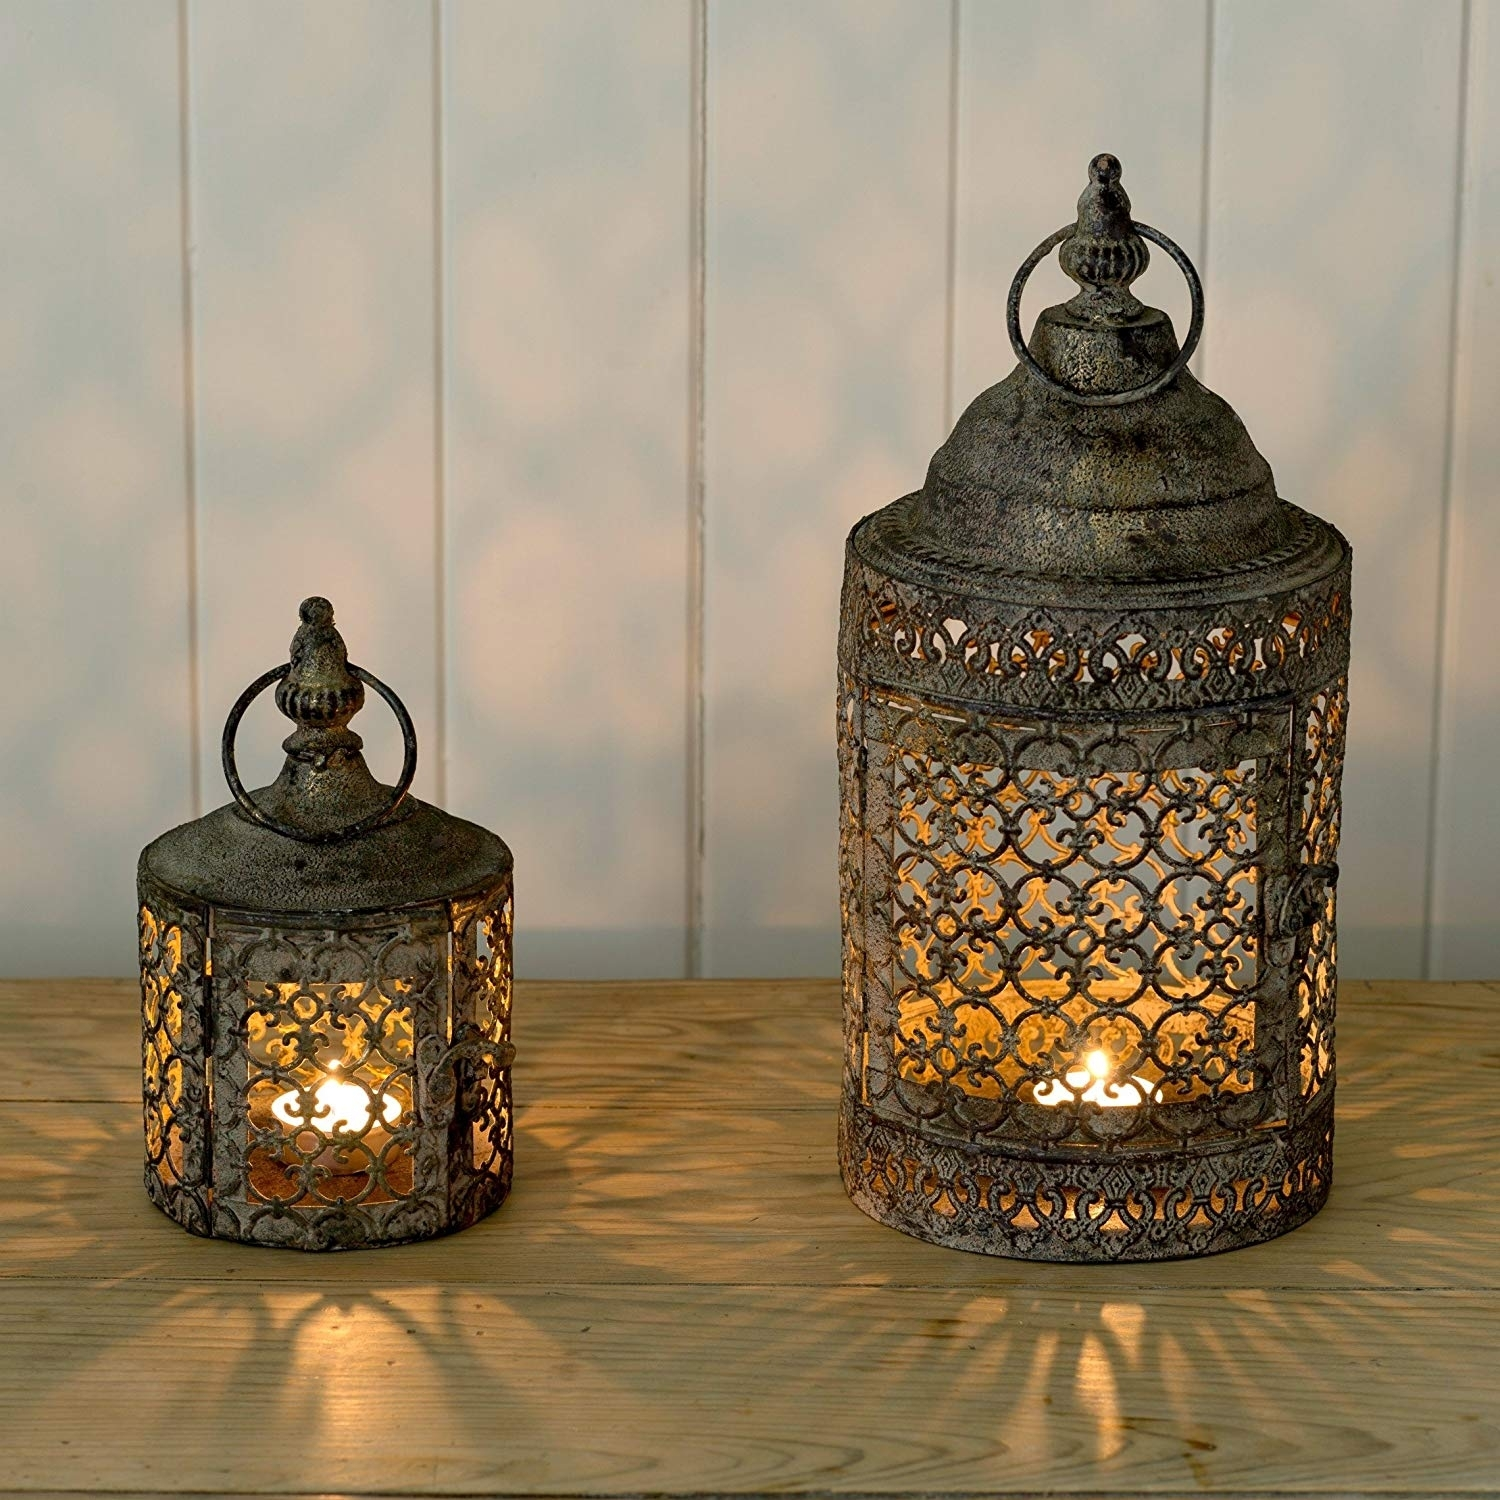 Decorative Lattice Moroccan Style Candle Lantern For Home & Garden pertaining to Moroccan Outdoor Lanterns (Image 5 of 20)